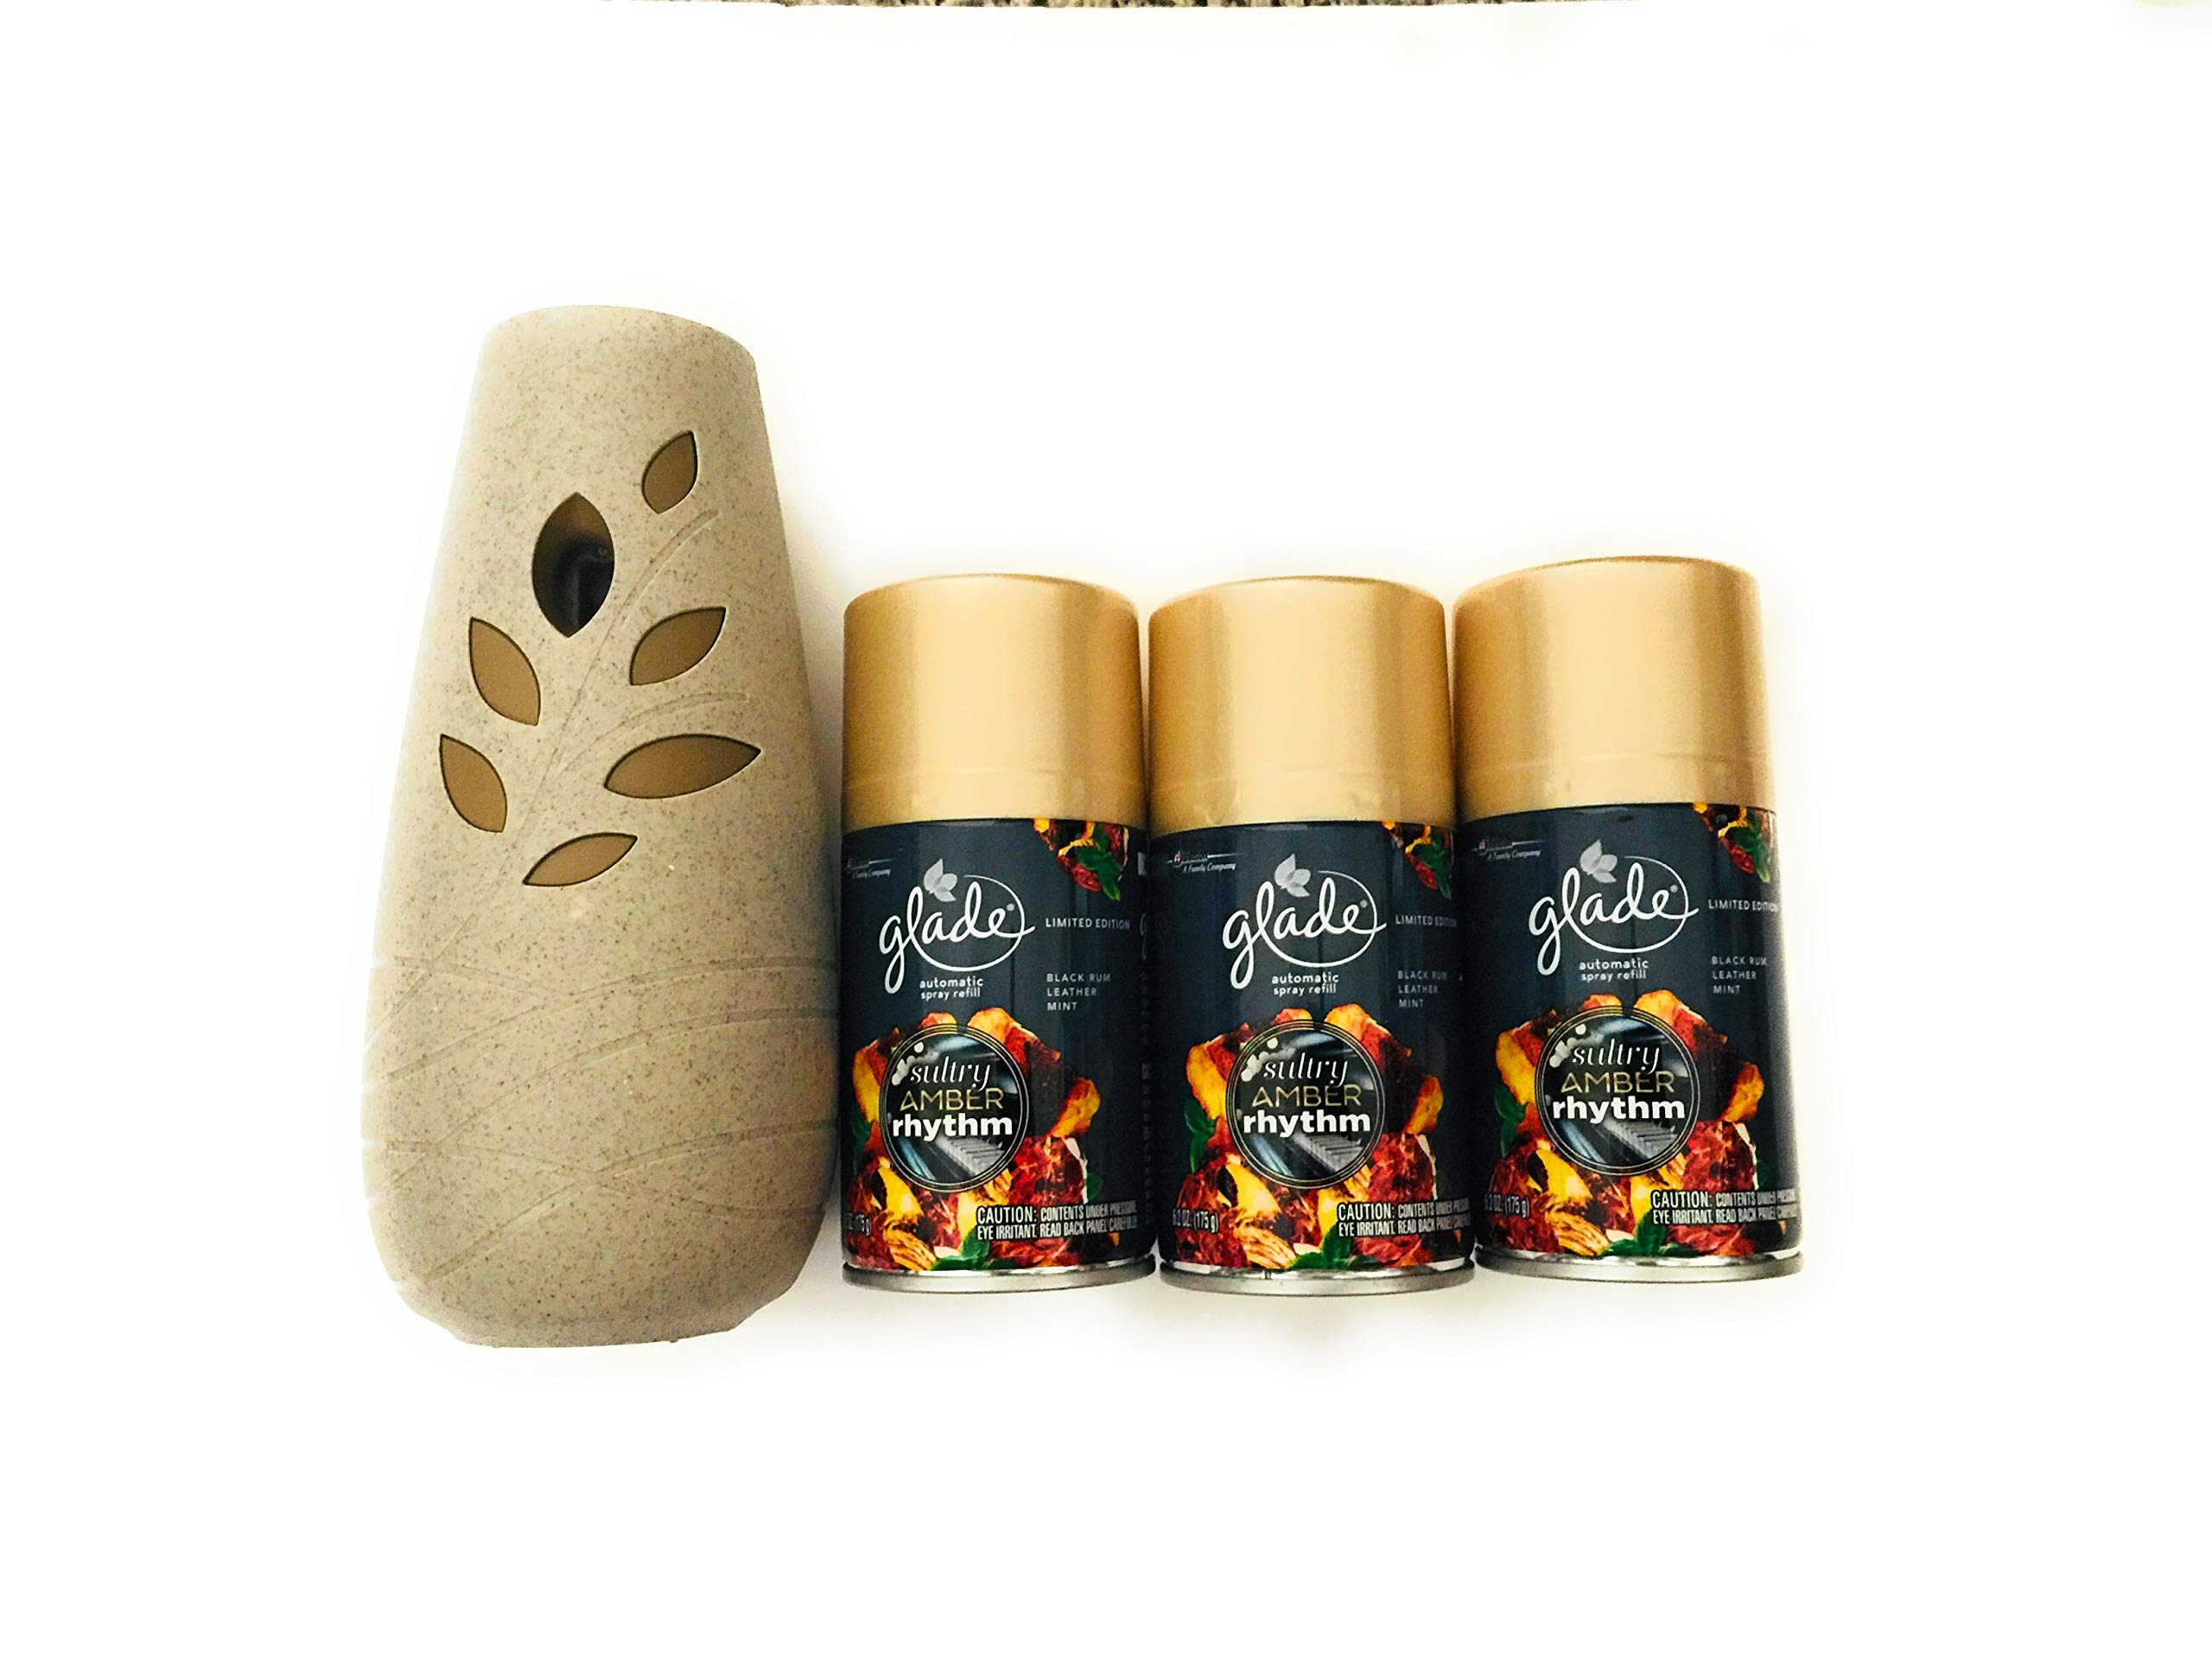 Glade Automatic Spray & 3 Refills Sultry Amber Rhythm Limited Edition by Glade